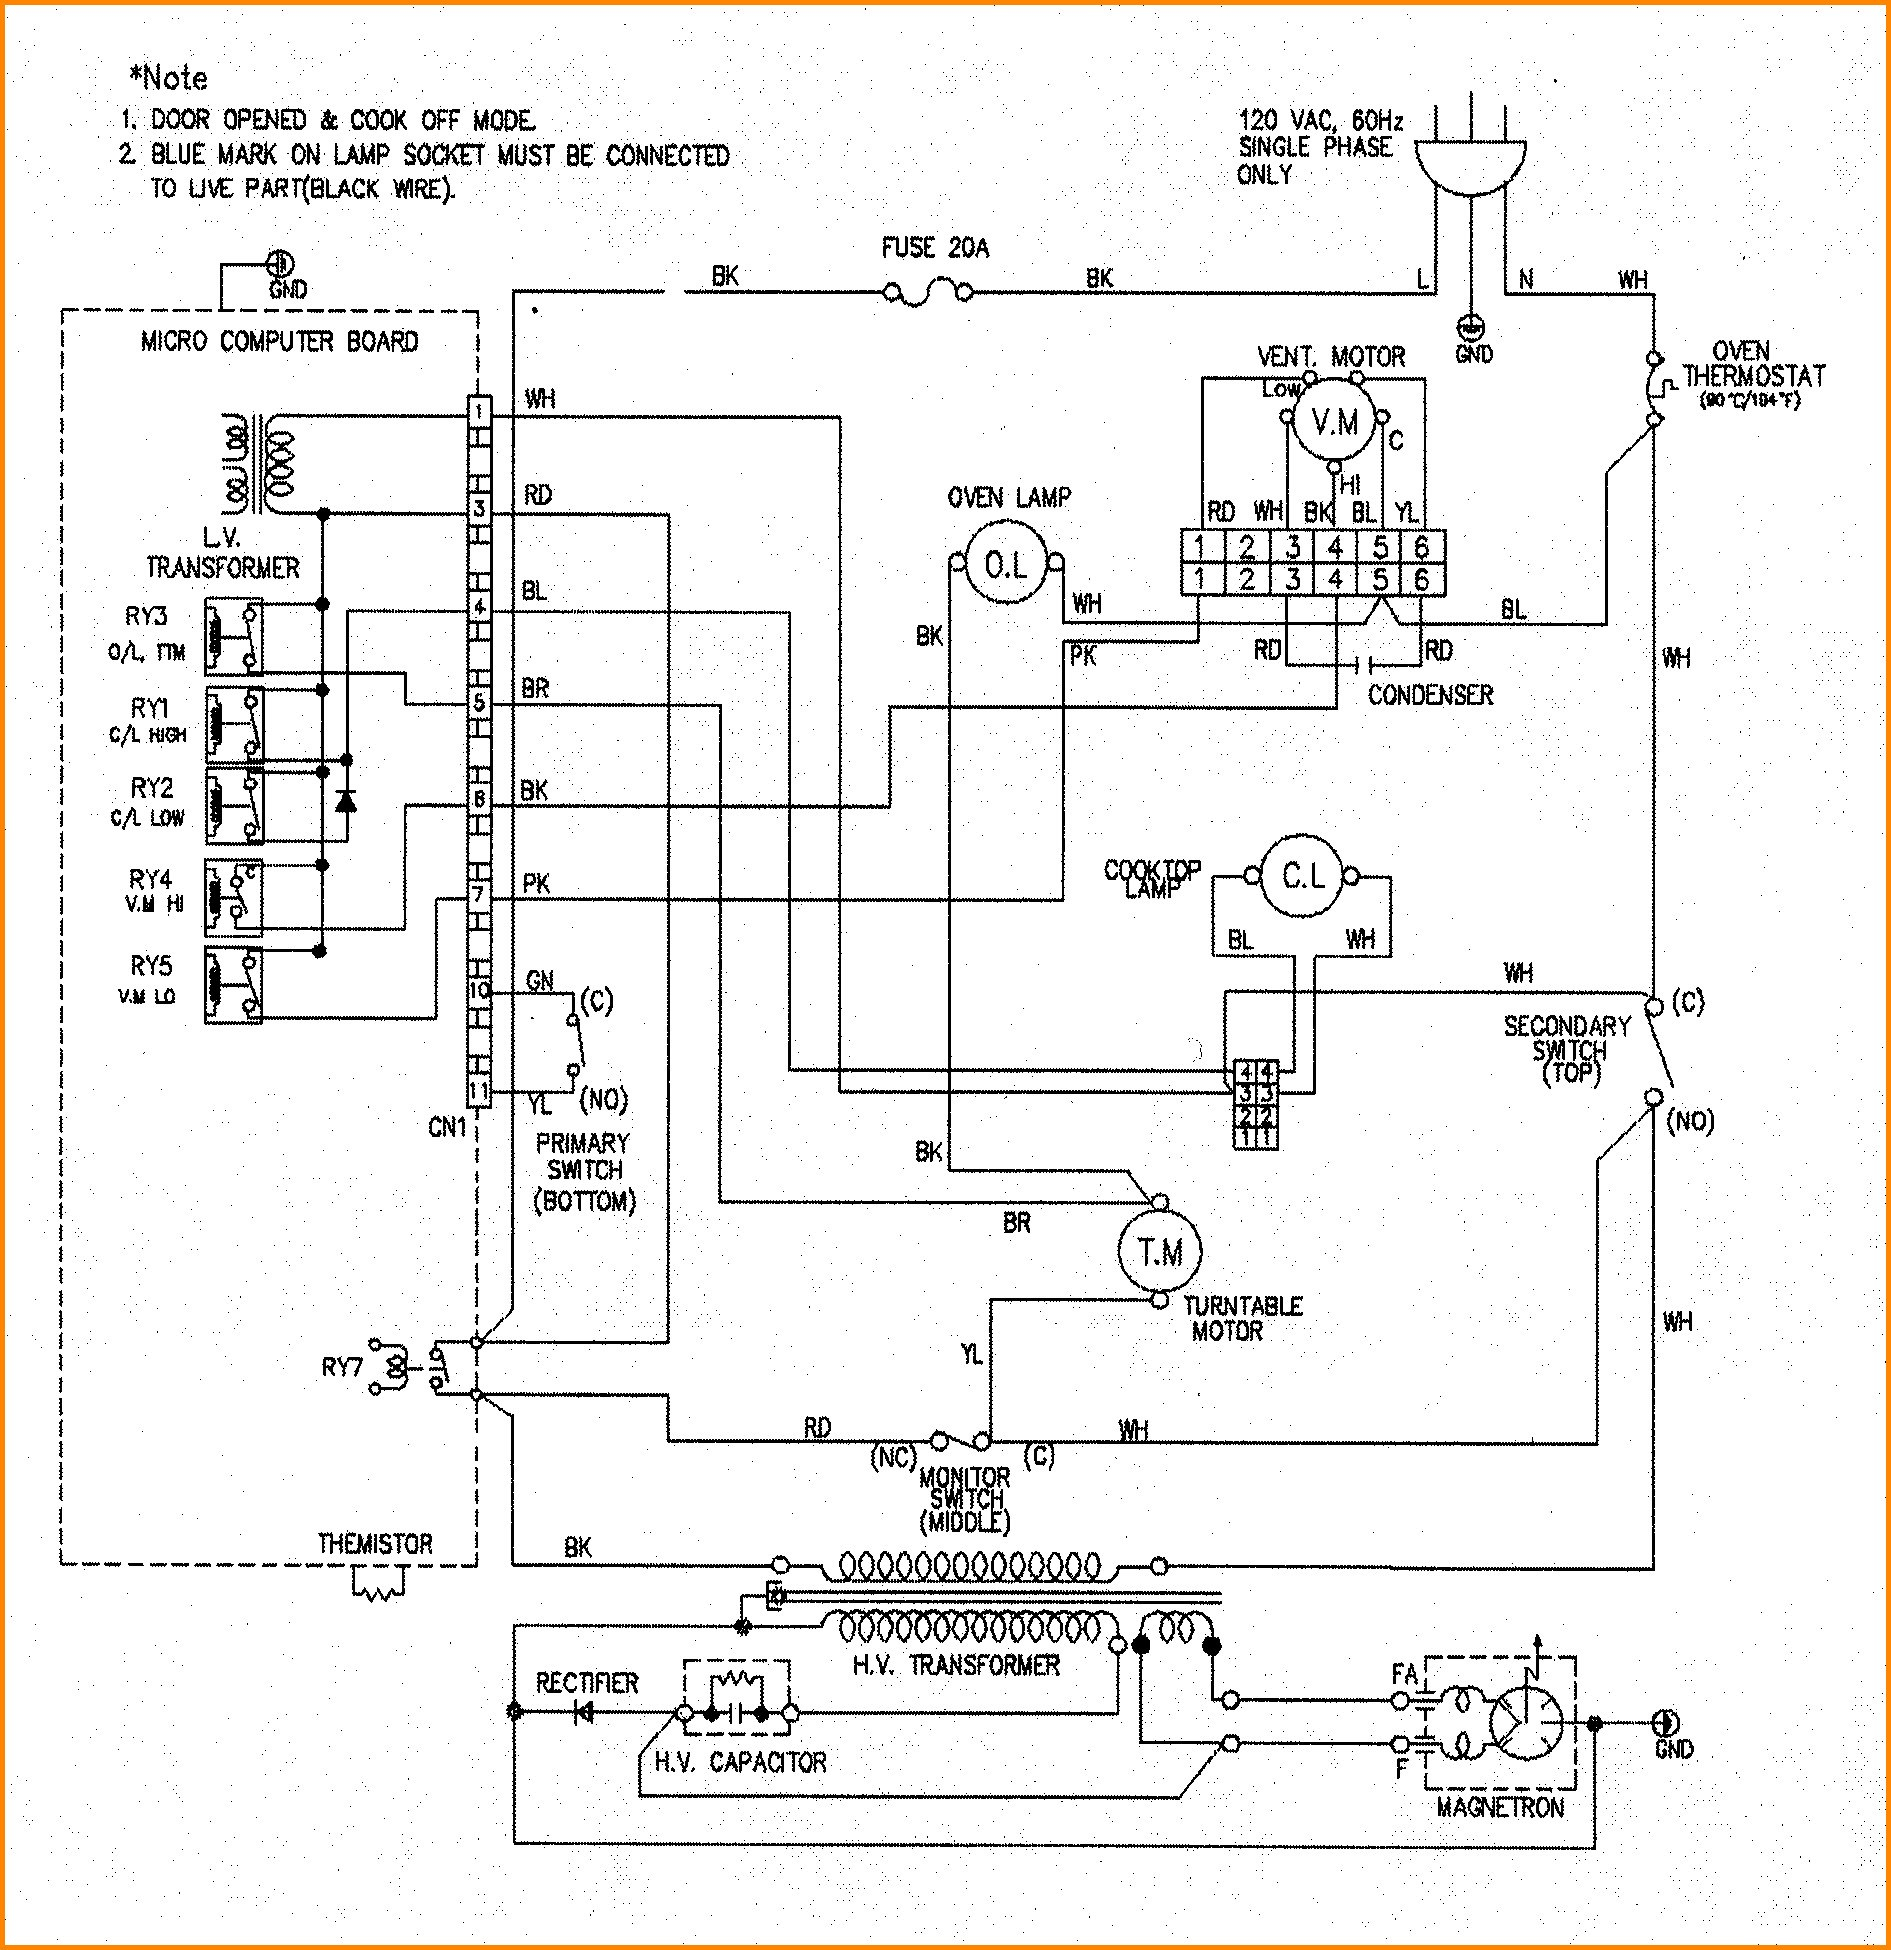 Wiring Diagram For Ge Microwave - Wiring Diagram K10 on